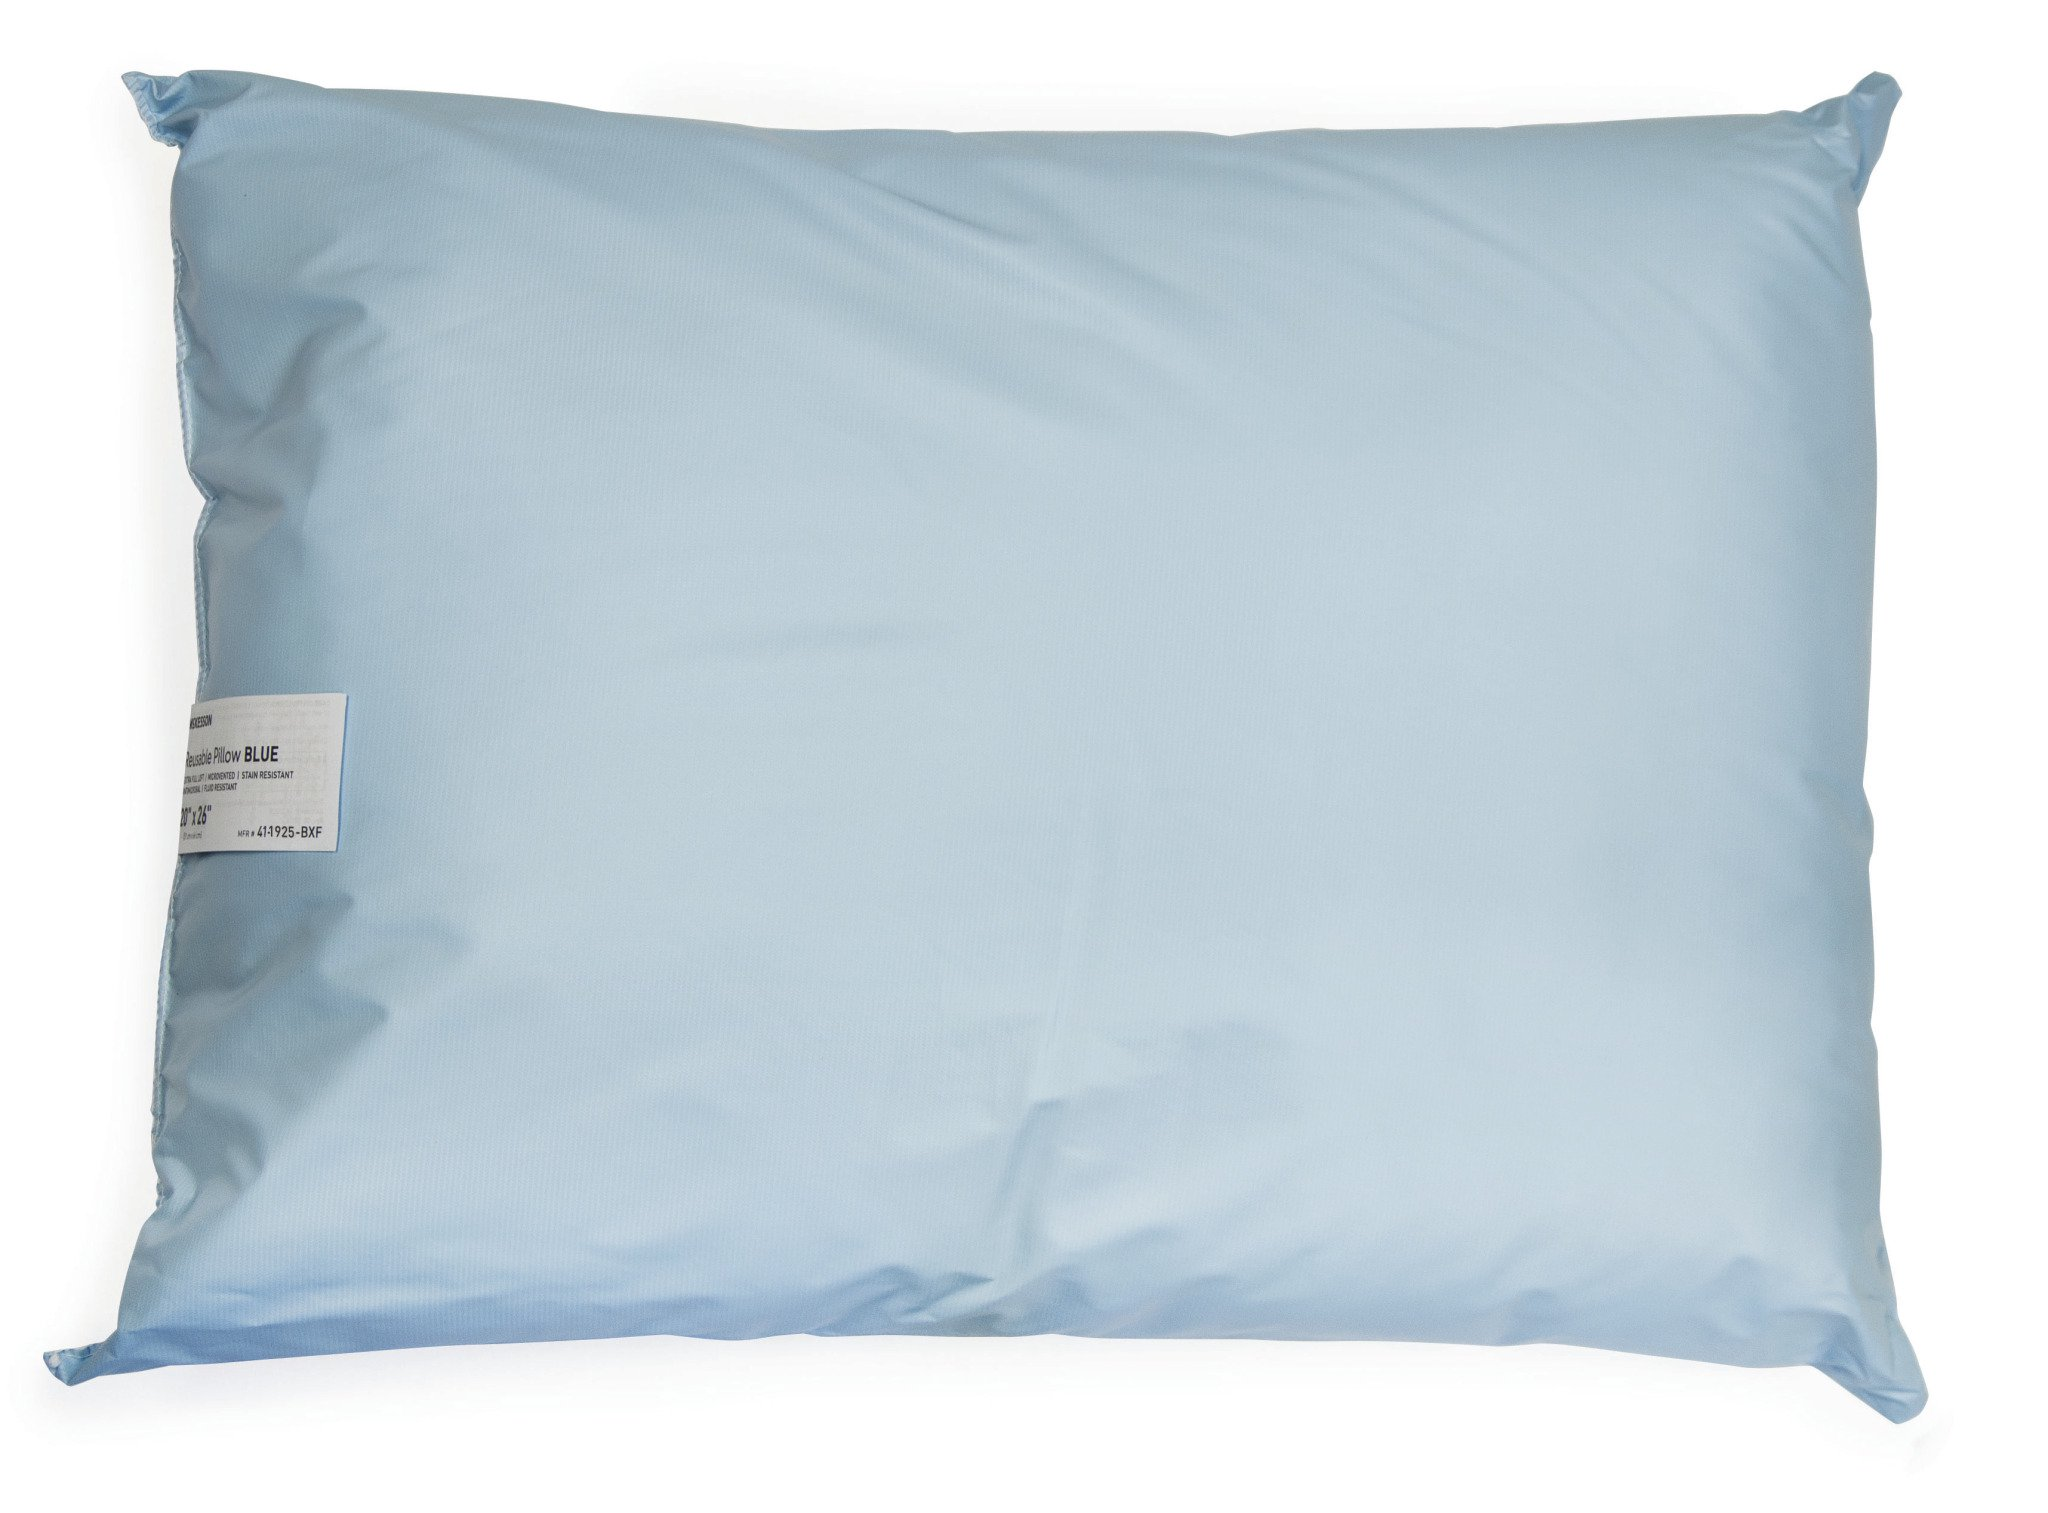 Bed Pillow, McKesson, 19 X 25 Inch Blue Reusable, 41-1925-BXF - EACH